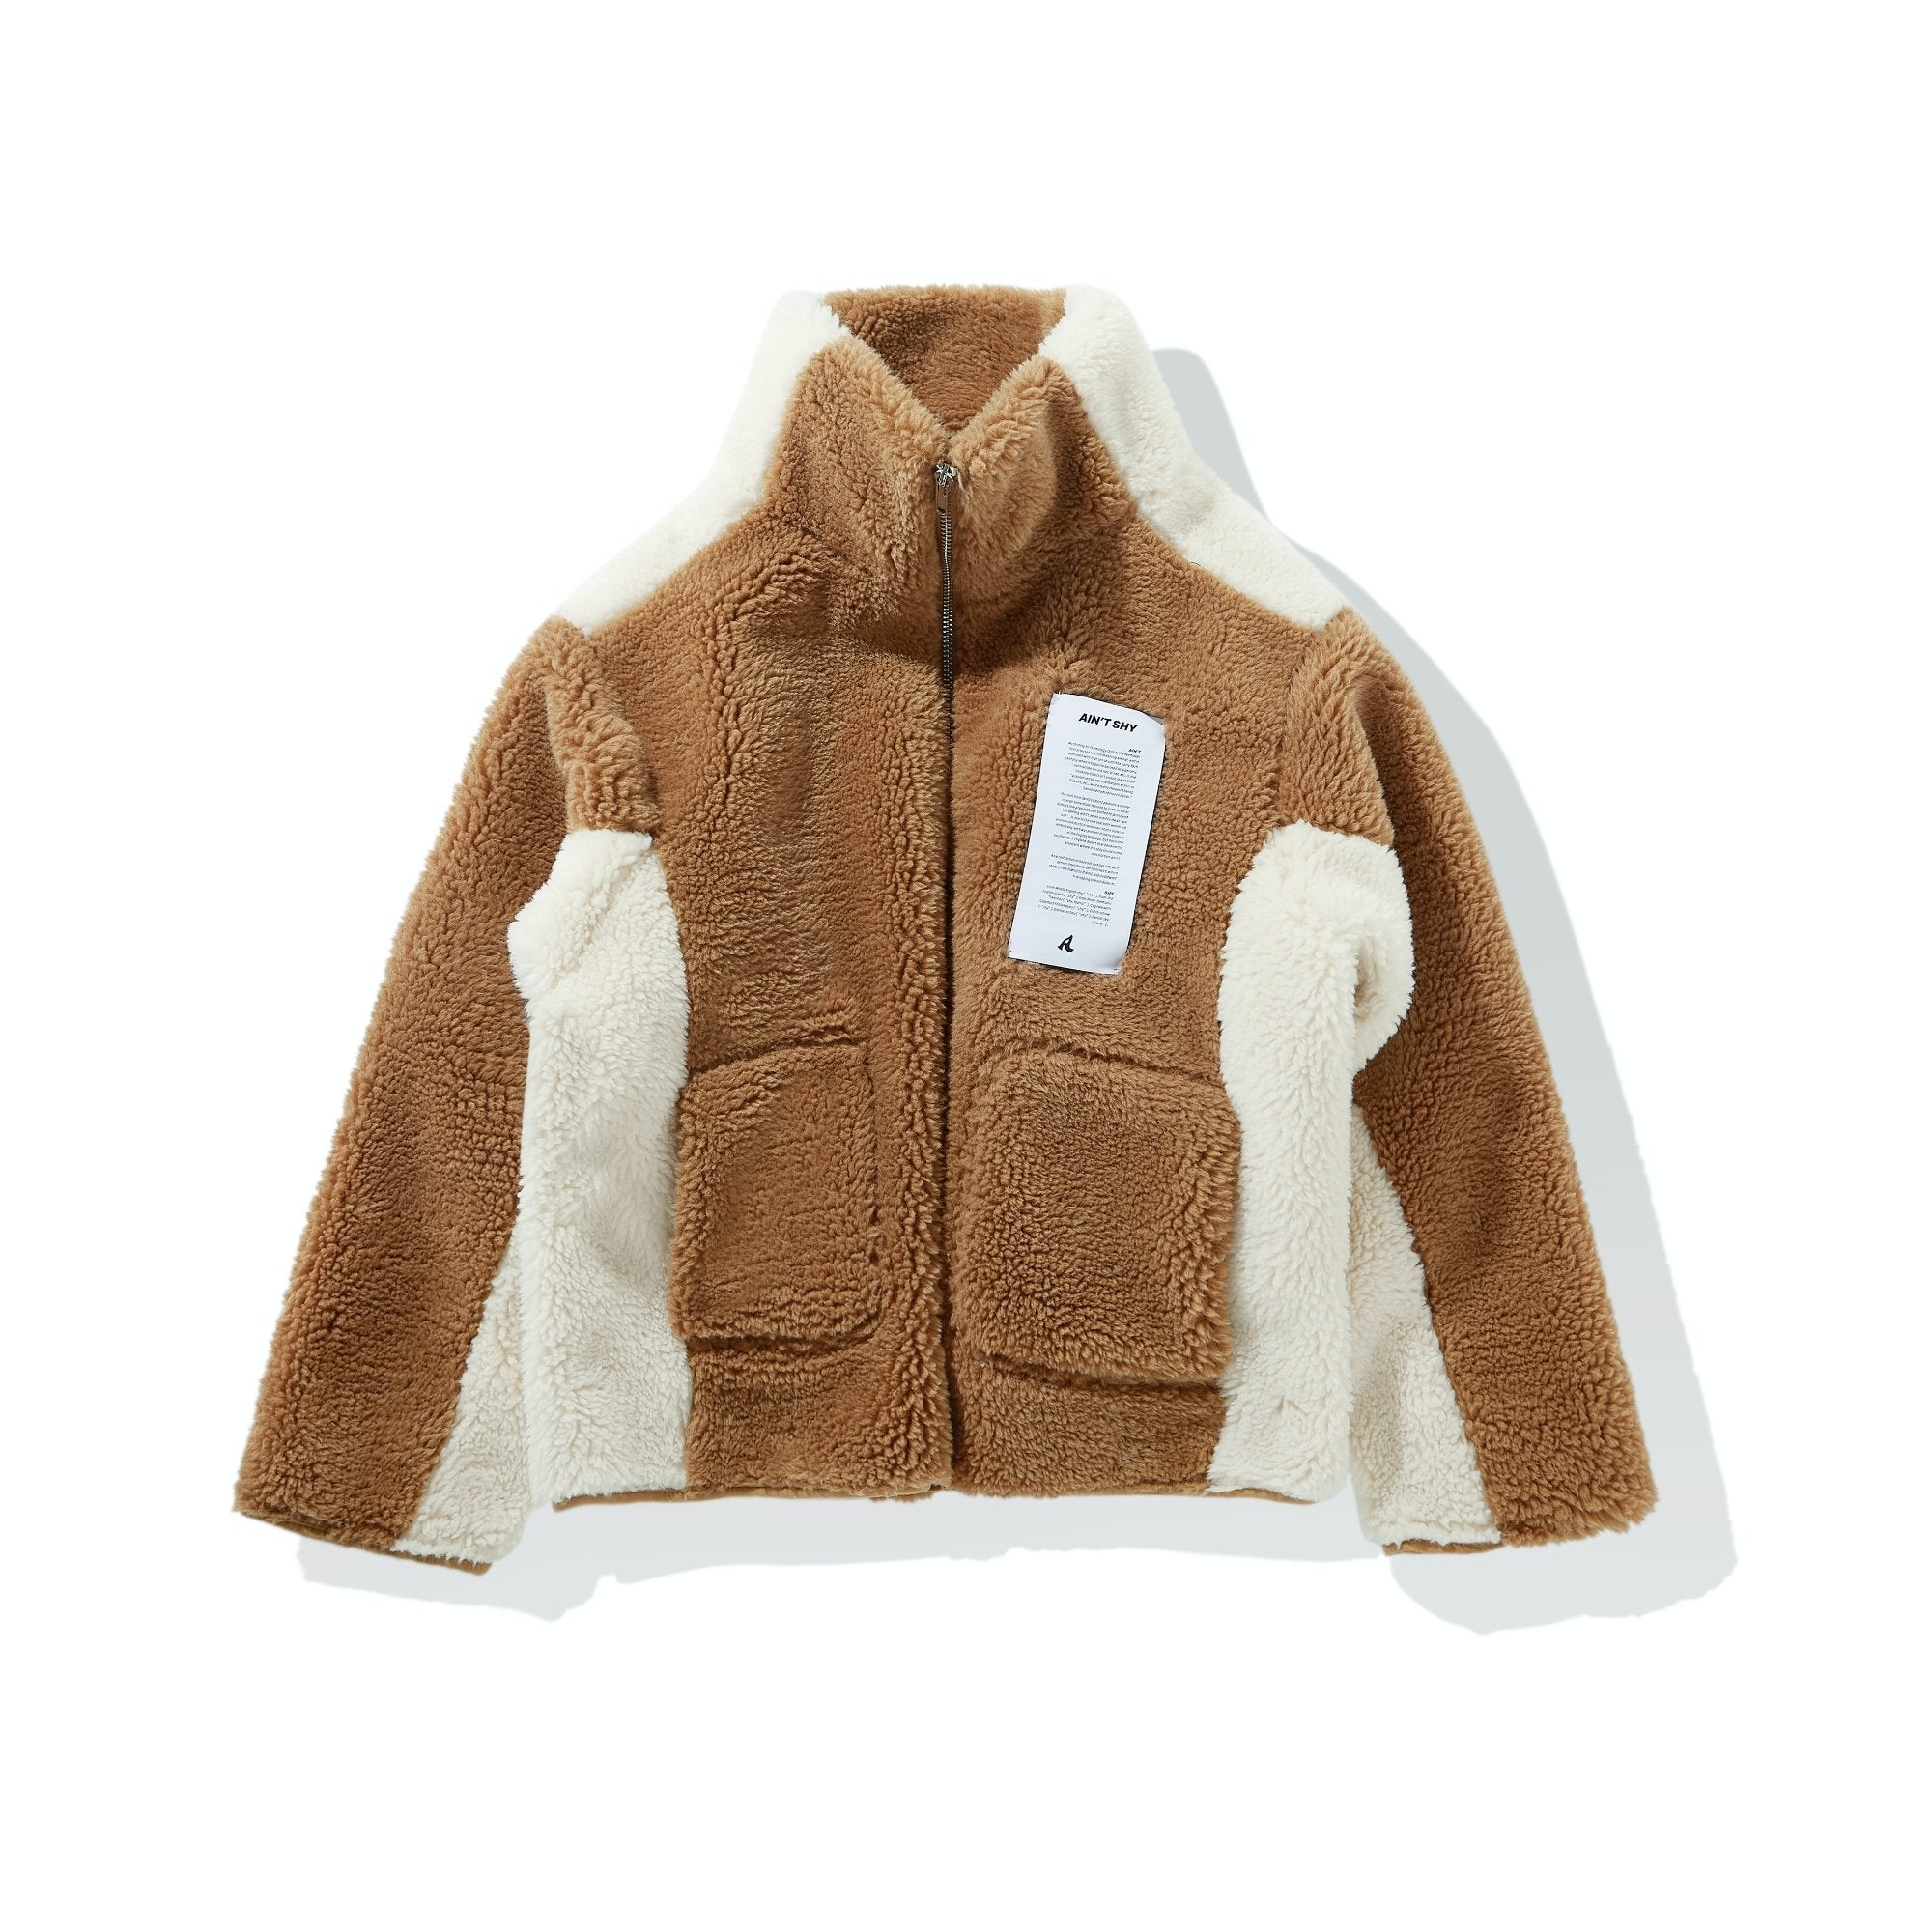 AIN'T SHY Fleece Jacket Caramel | MADA IN CHINA